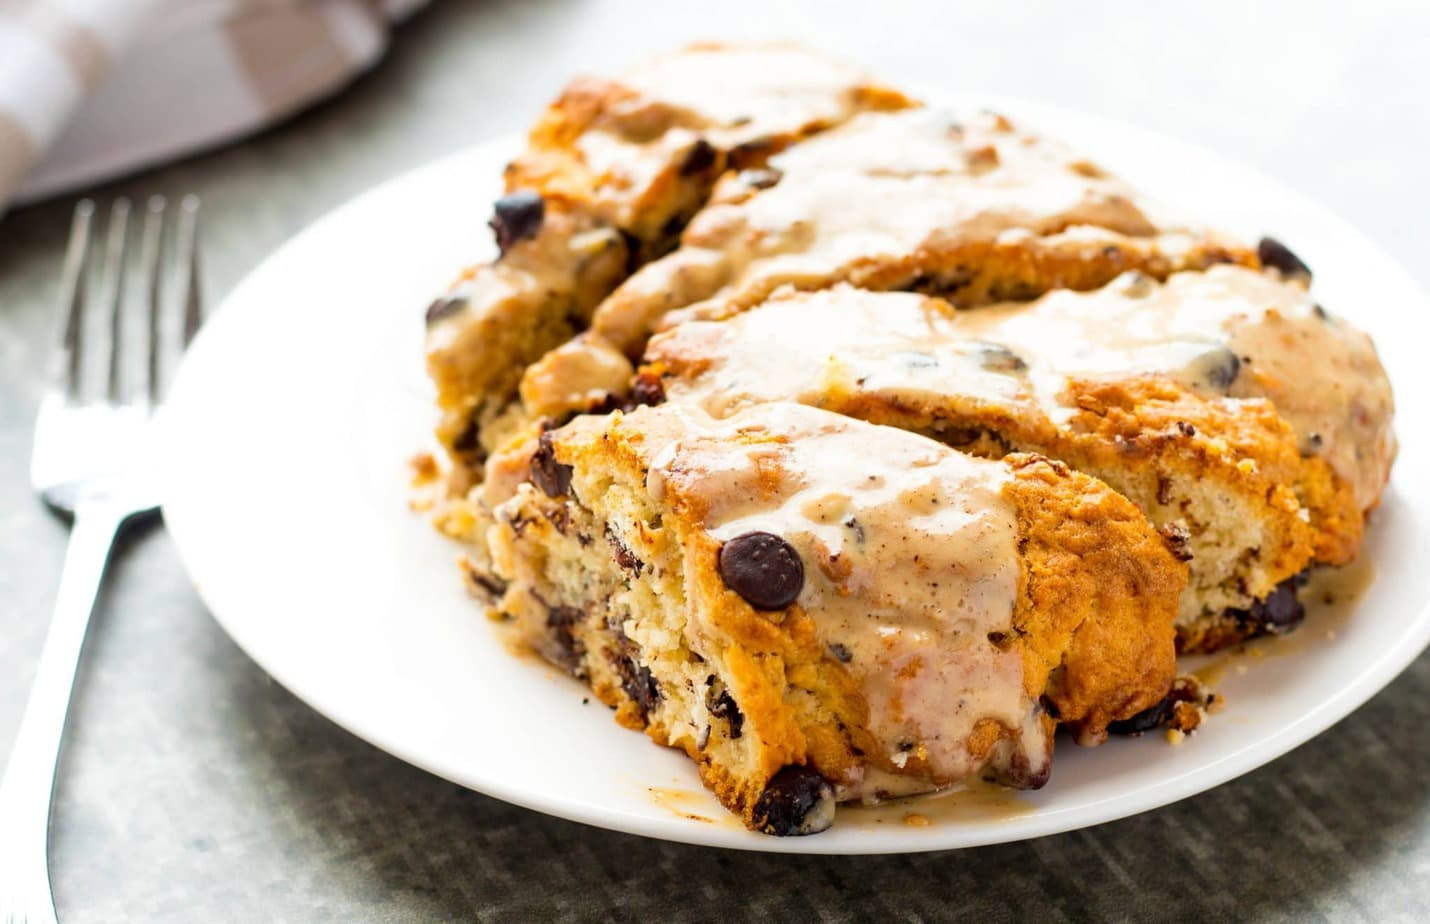 Mocha Glazed Chocolate Chip Hazelnut Scones